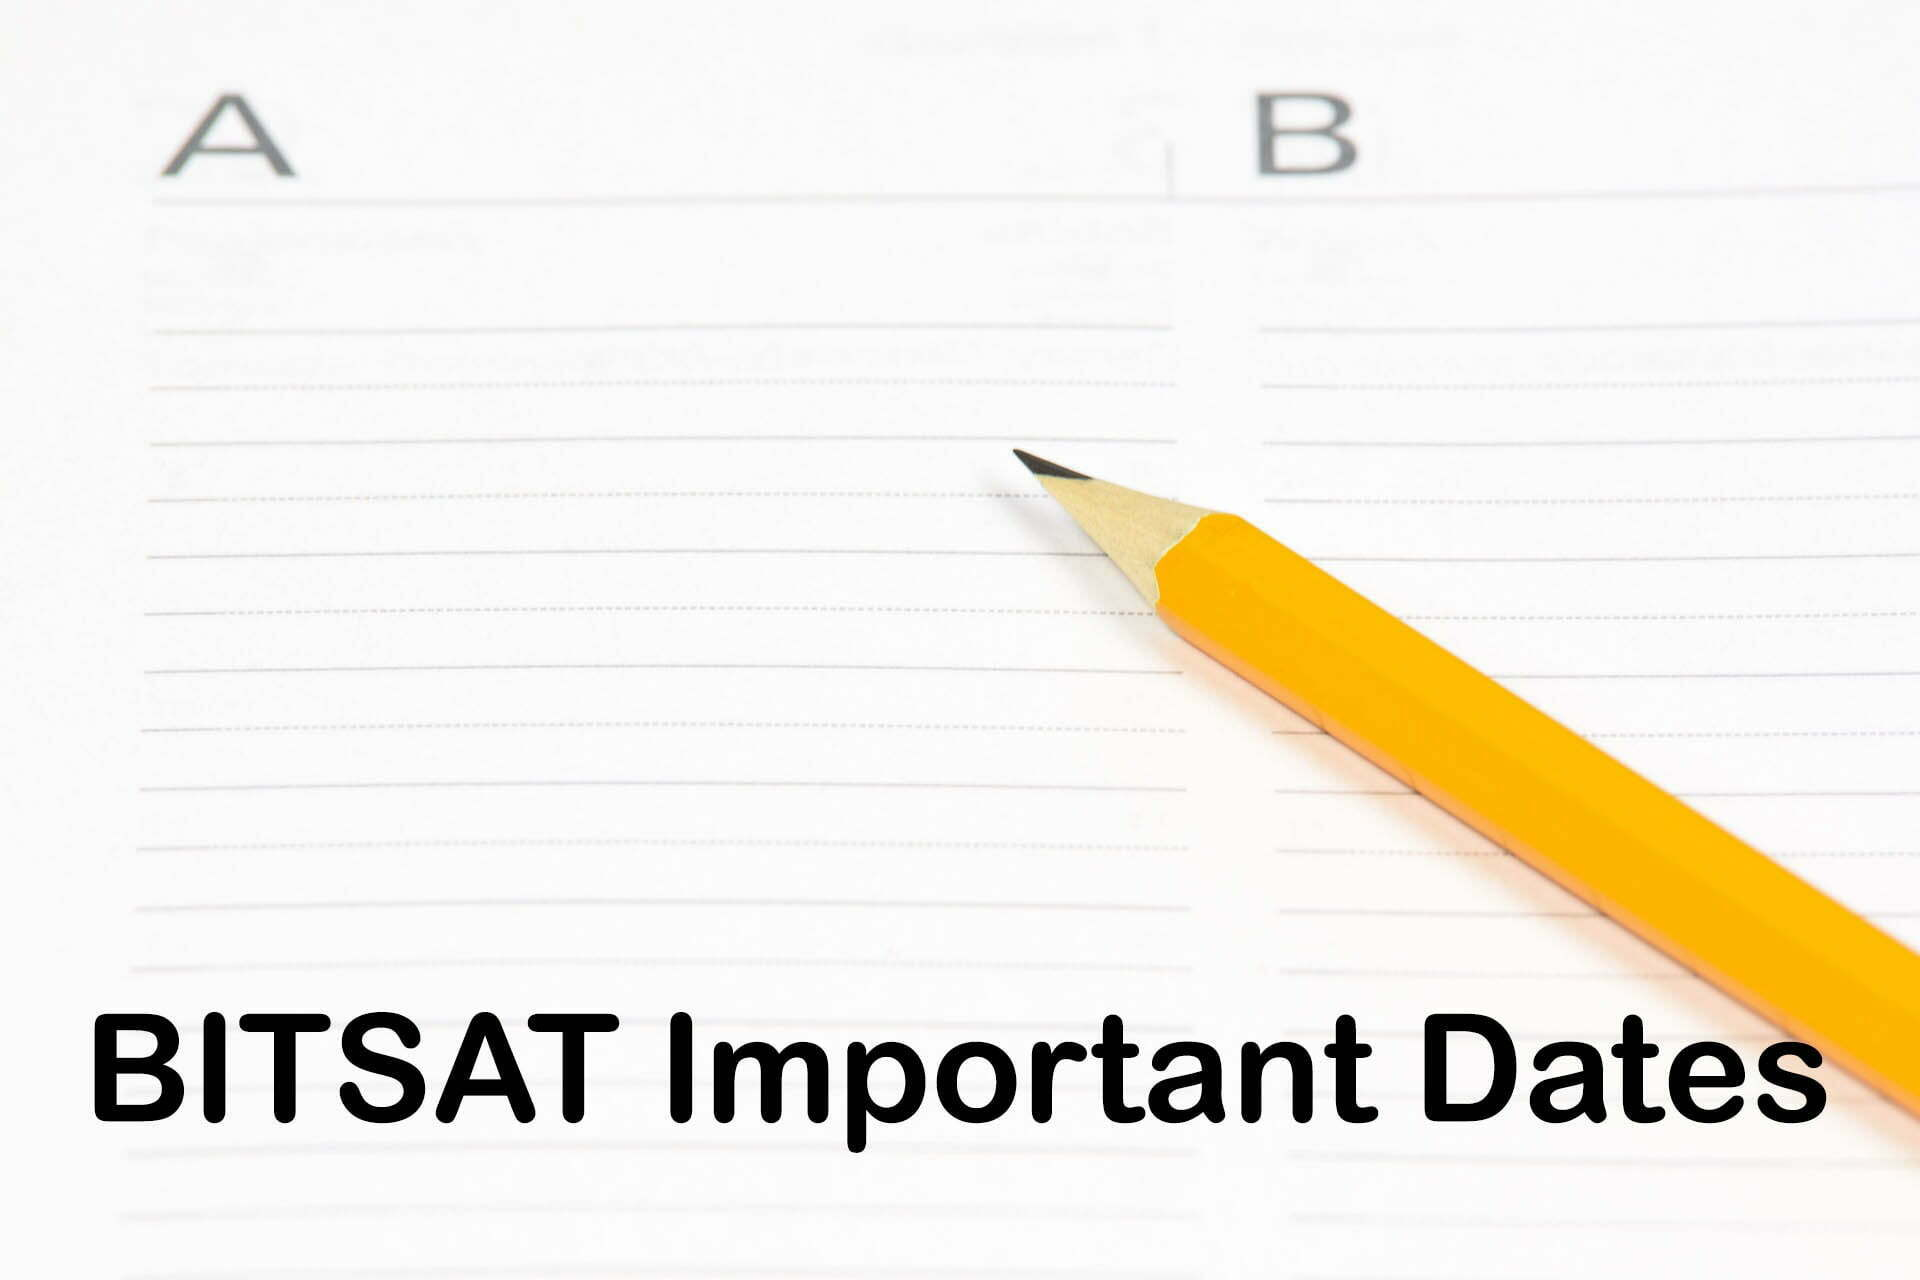 BITSAT Important Dates